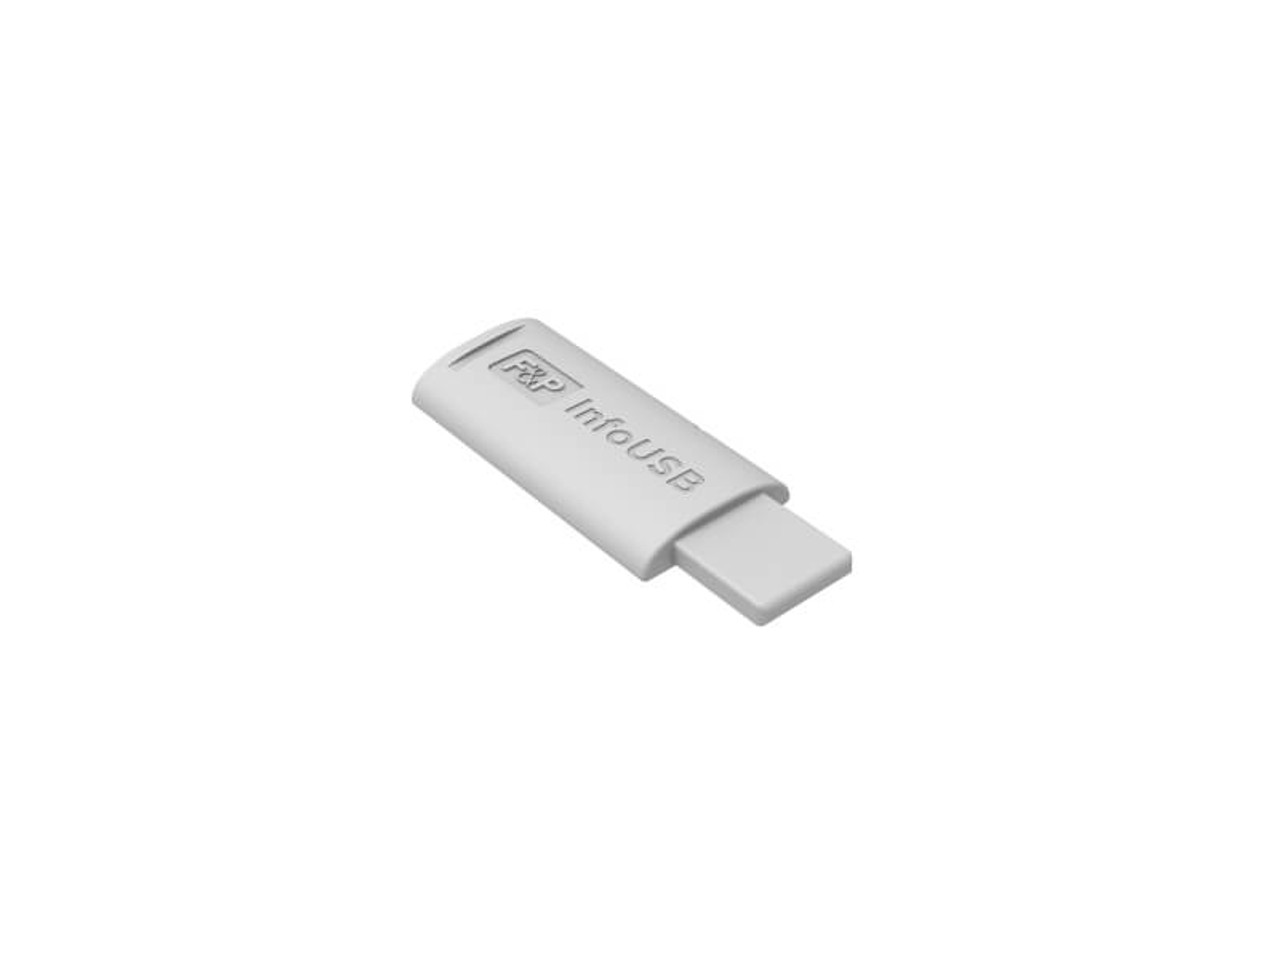 Buy Fisher and Paykel Healthcare InfoSmart USB - CPAP Accessories in Australia